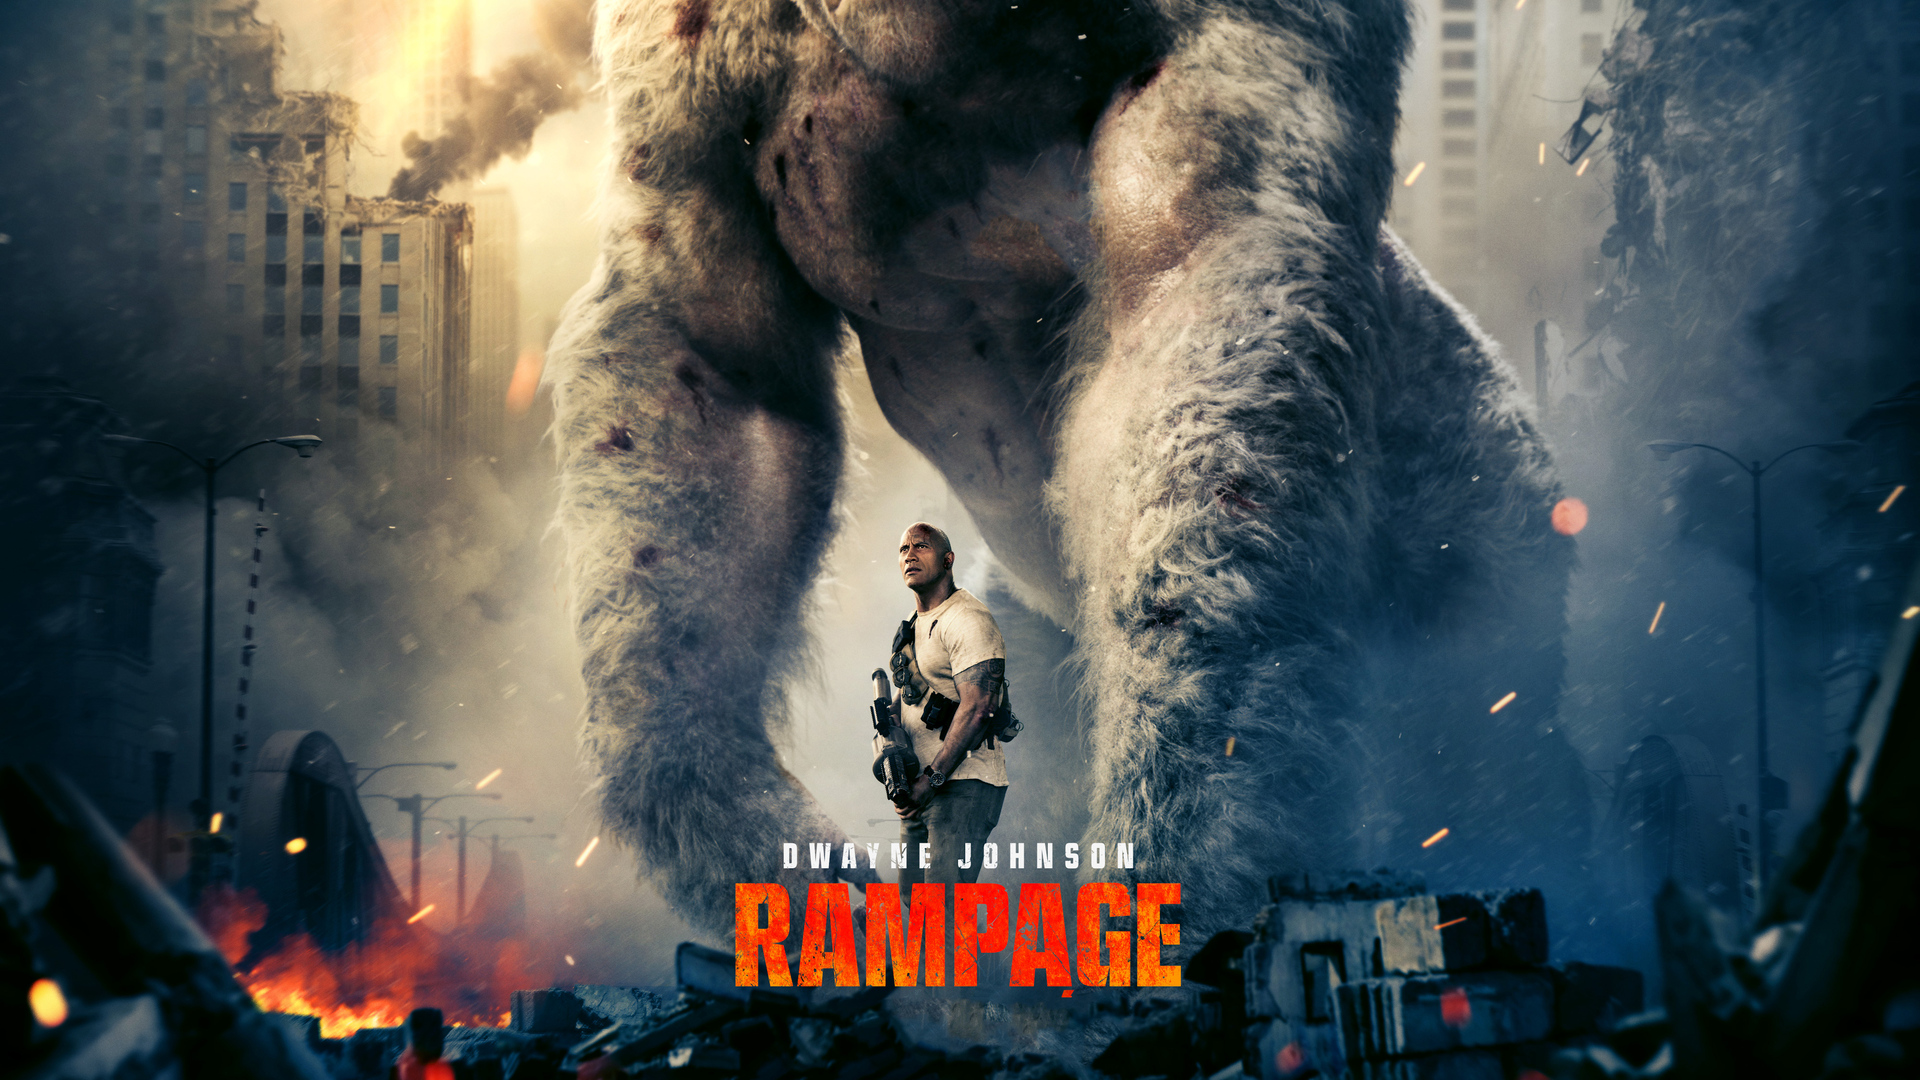 1920x1080 rampage 4k laptop full hd 1080p hd 4k wallpapers images 1920x1080 rampage 4k laptop full hd 1080p hd 4k wallpapers images backgrounds photos and pictures voltagebd Image collections